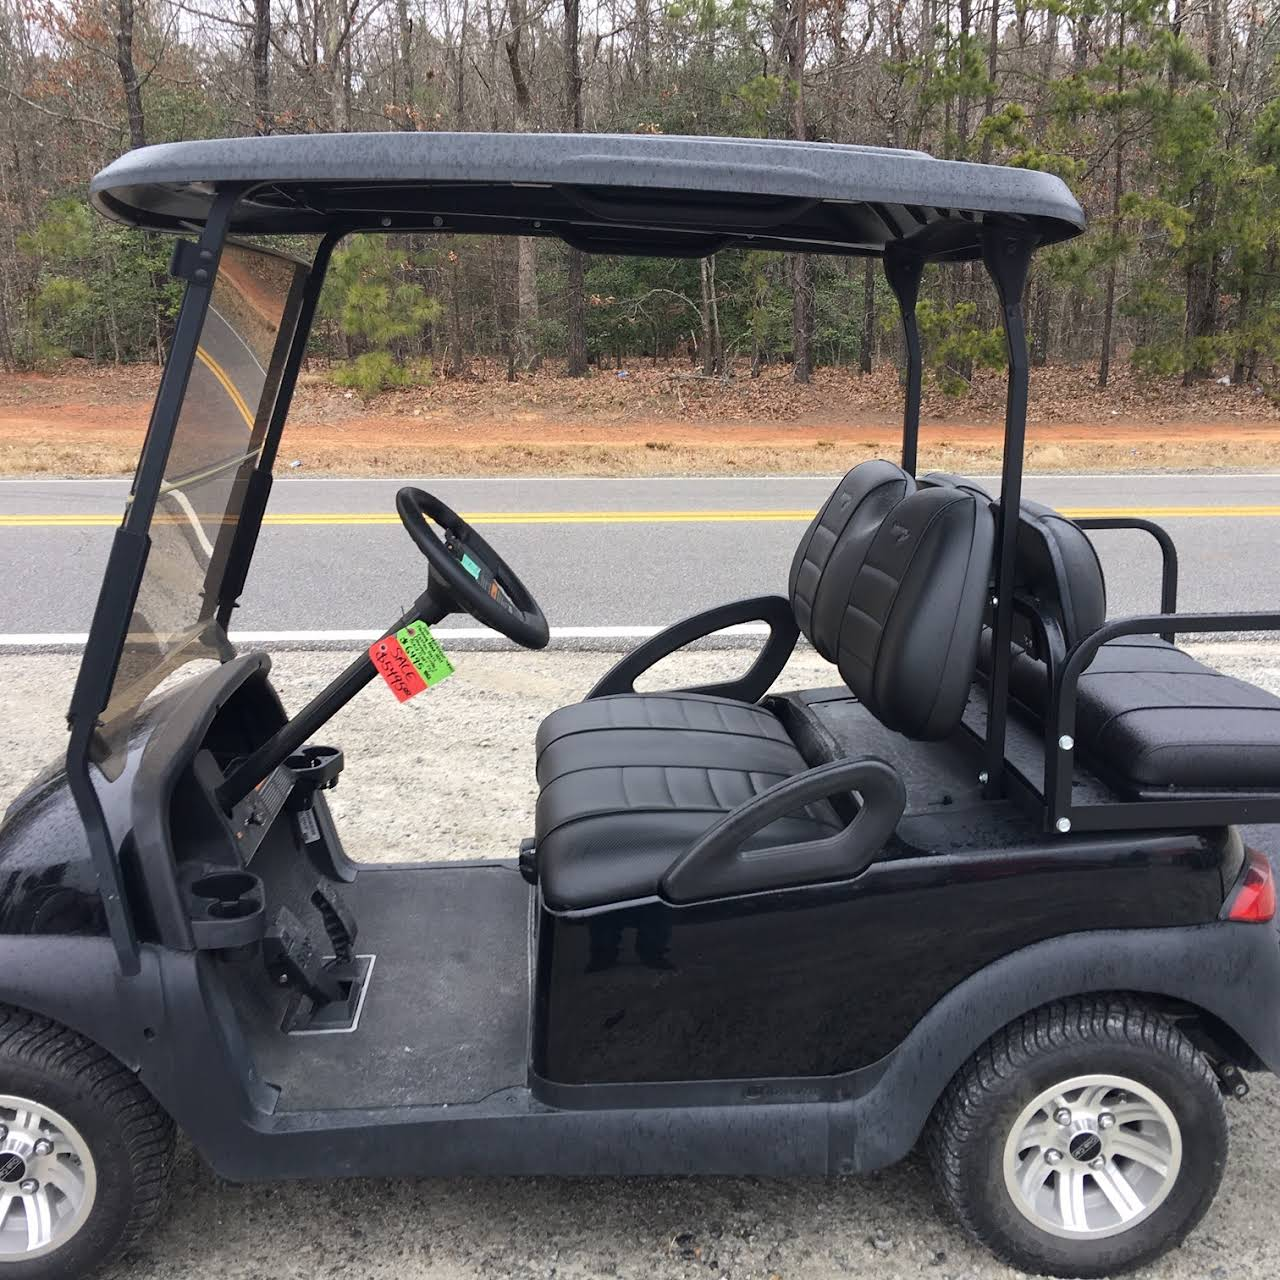 Under the Sun Golf Cars Capital Blvd - Golf Cart Dealer in